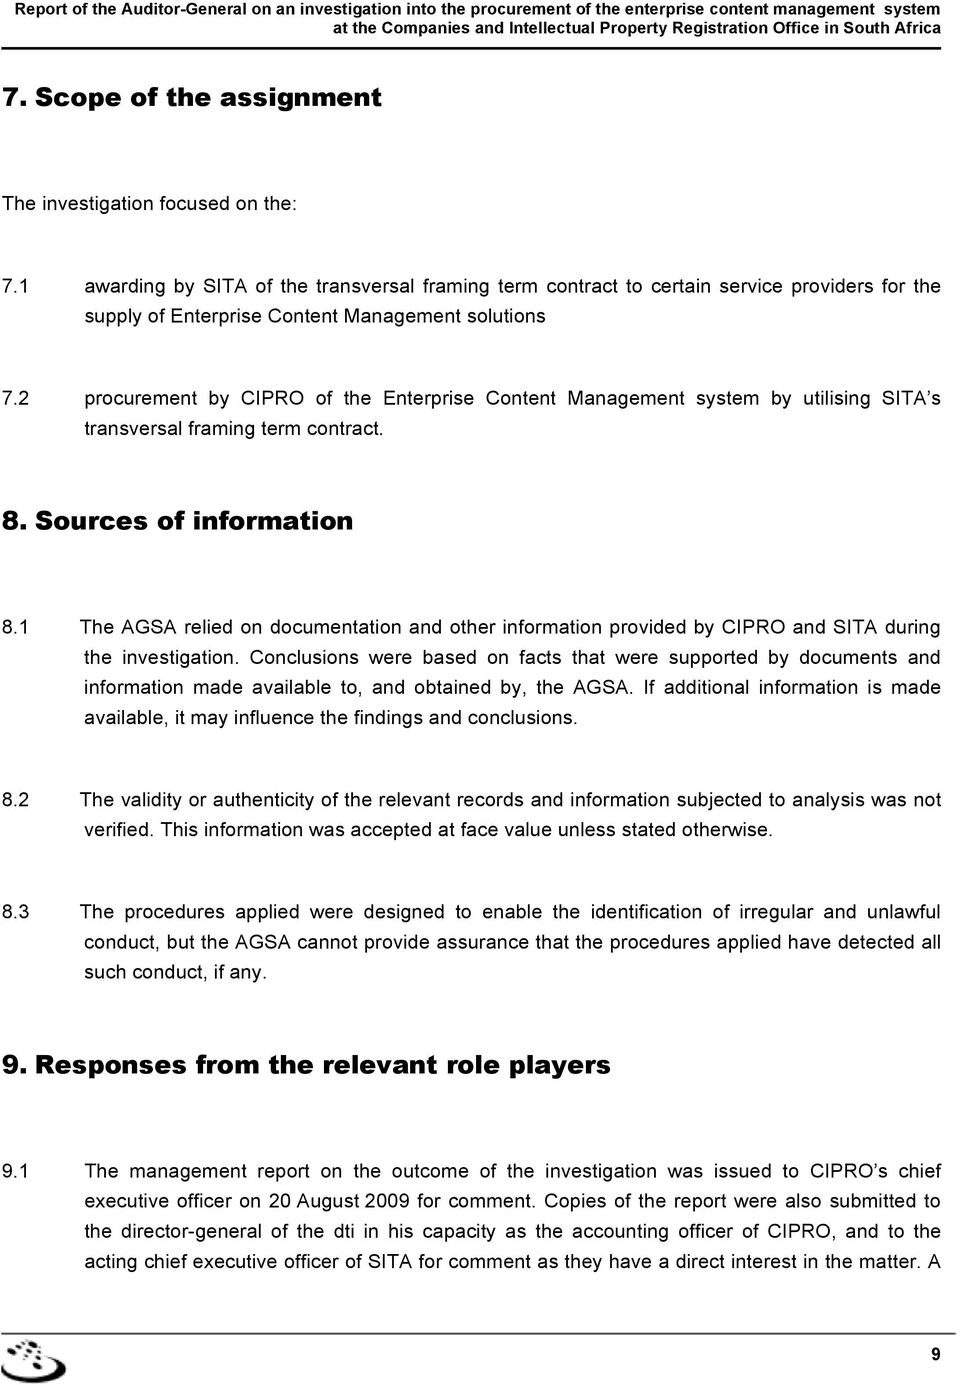 2 procurement by CIPRO of the Enterprise Content Management system by utilising SITA s transversal framing term contract. 8. Sources of information 8.